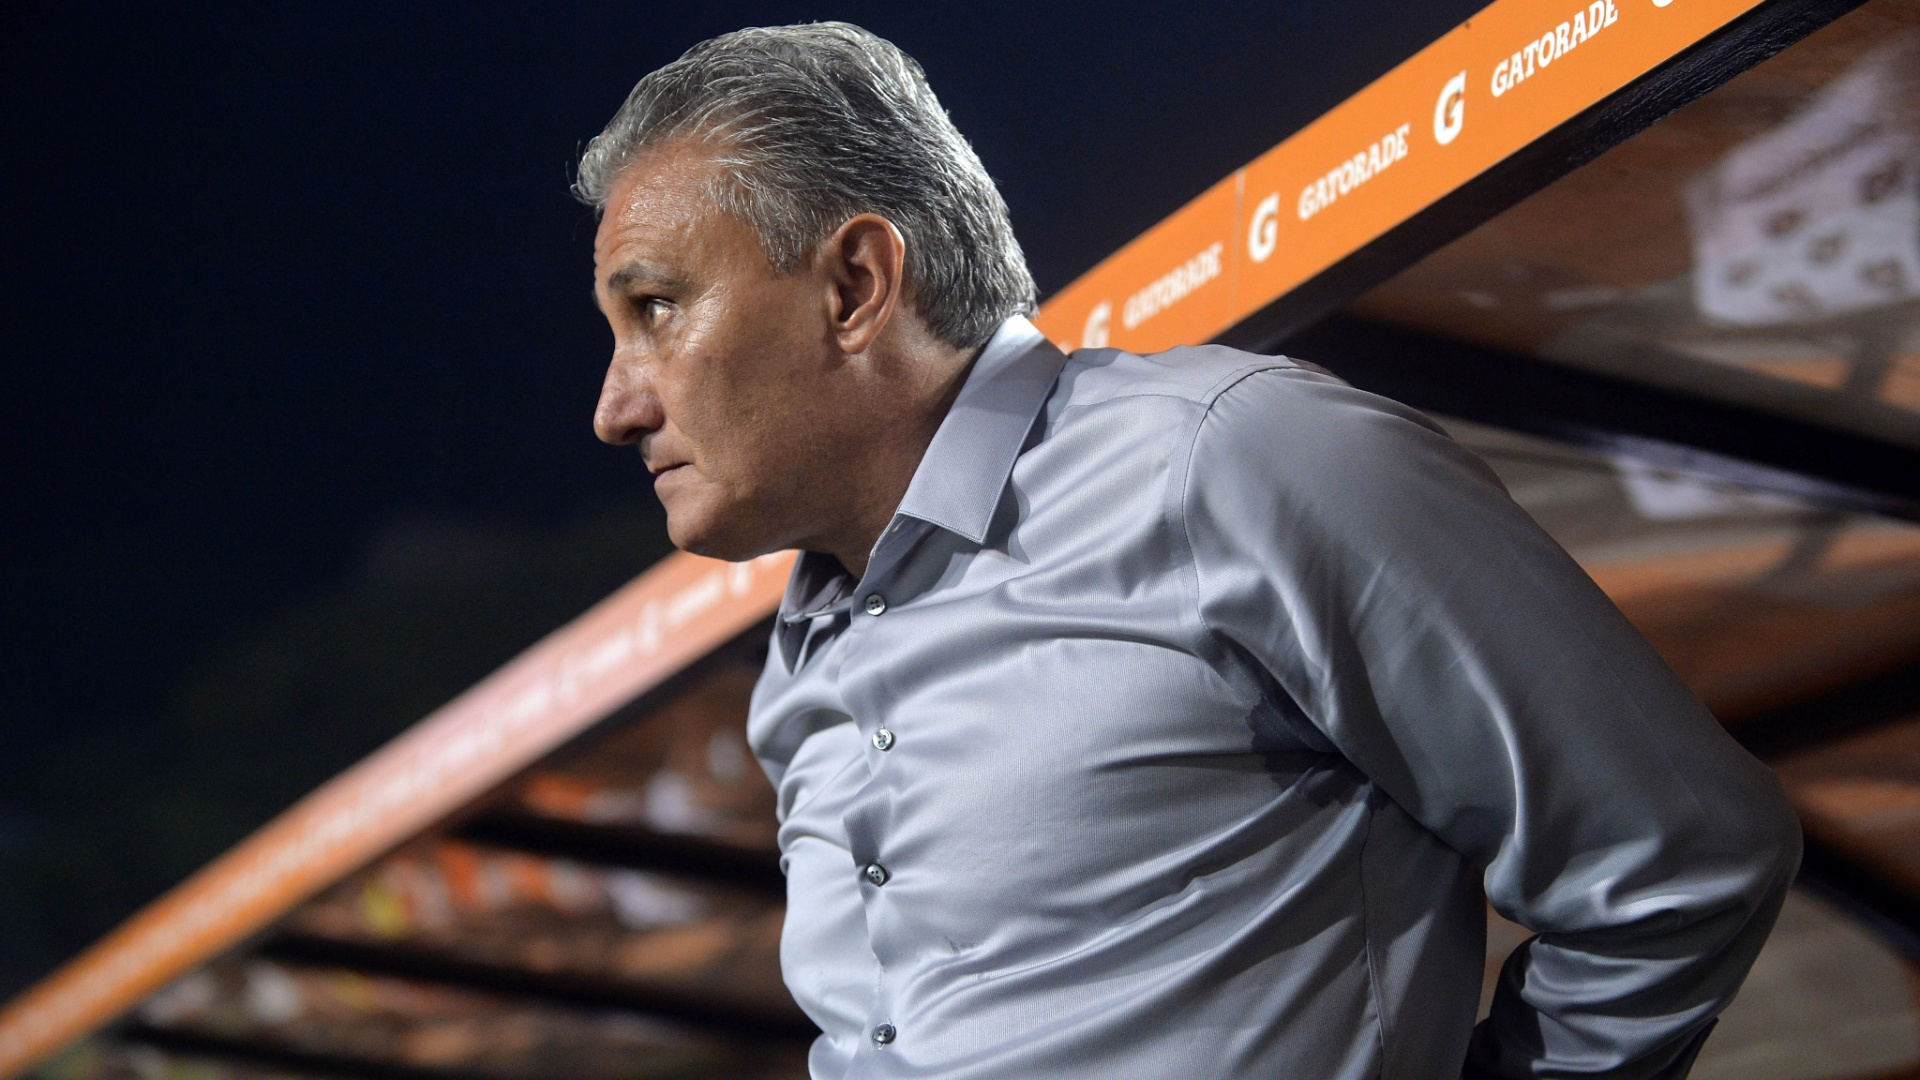 15.05.2013 - Tite, tcnico do Corinthians, se ajeita antes do incio da partida contra o Boca Juniors, pelas oitavas da Copa Libertadores